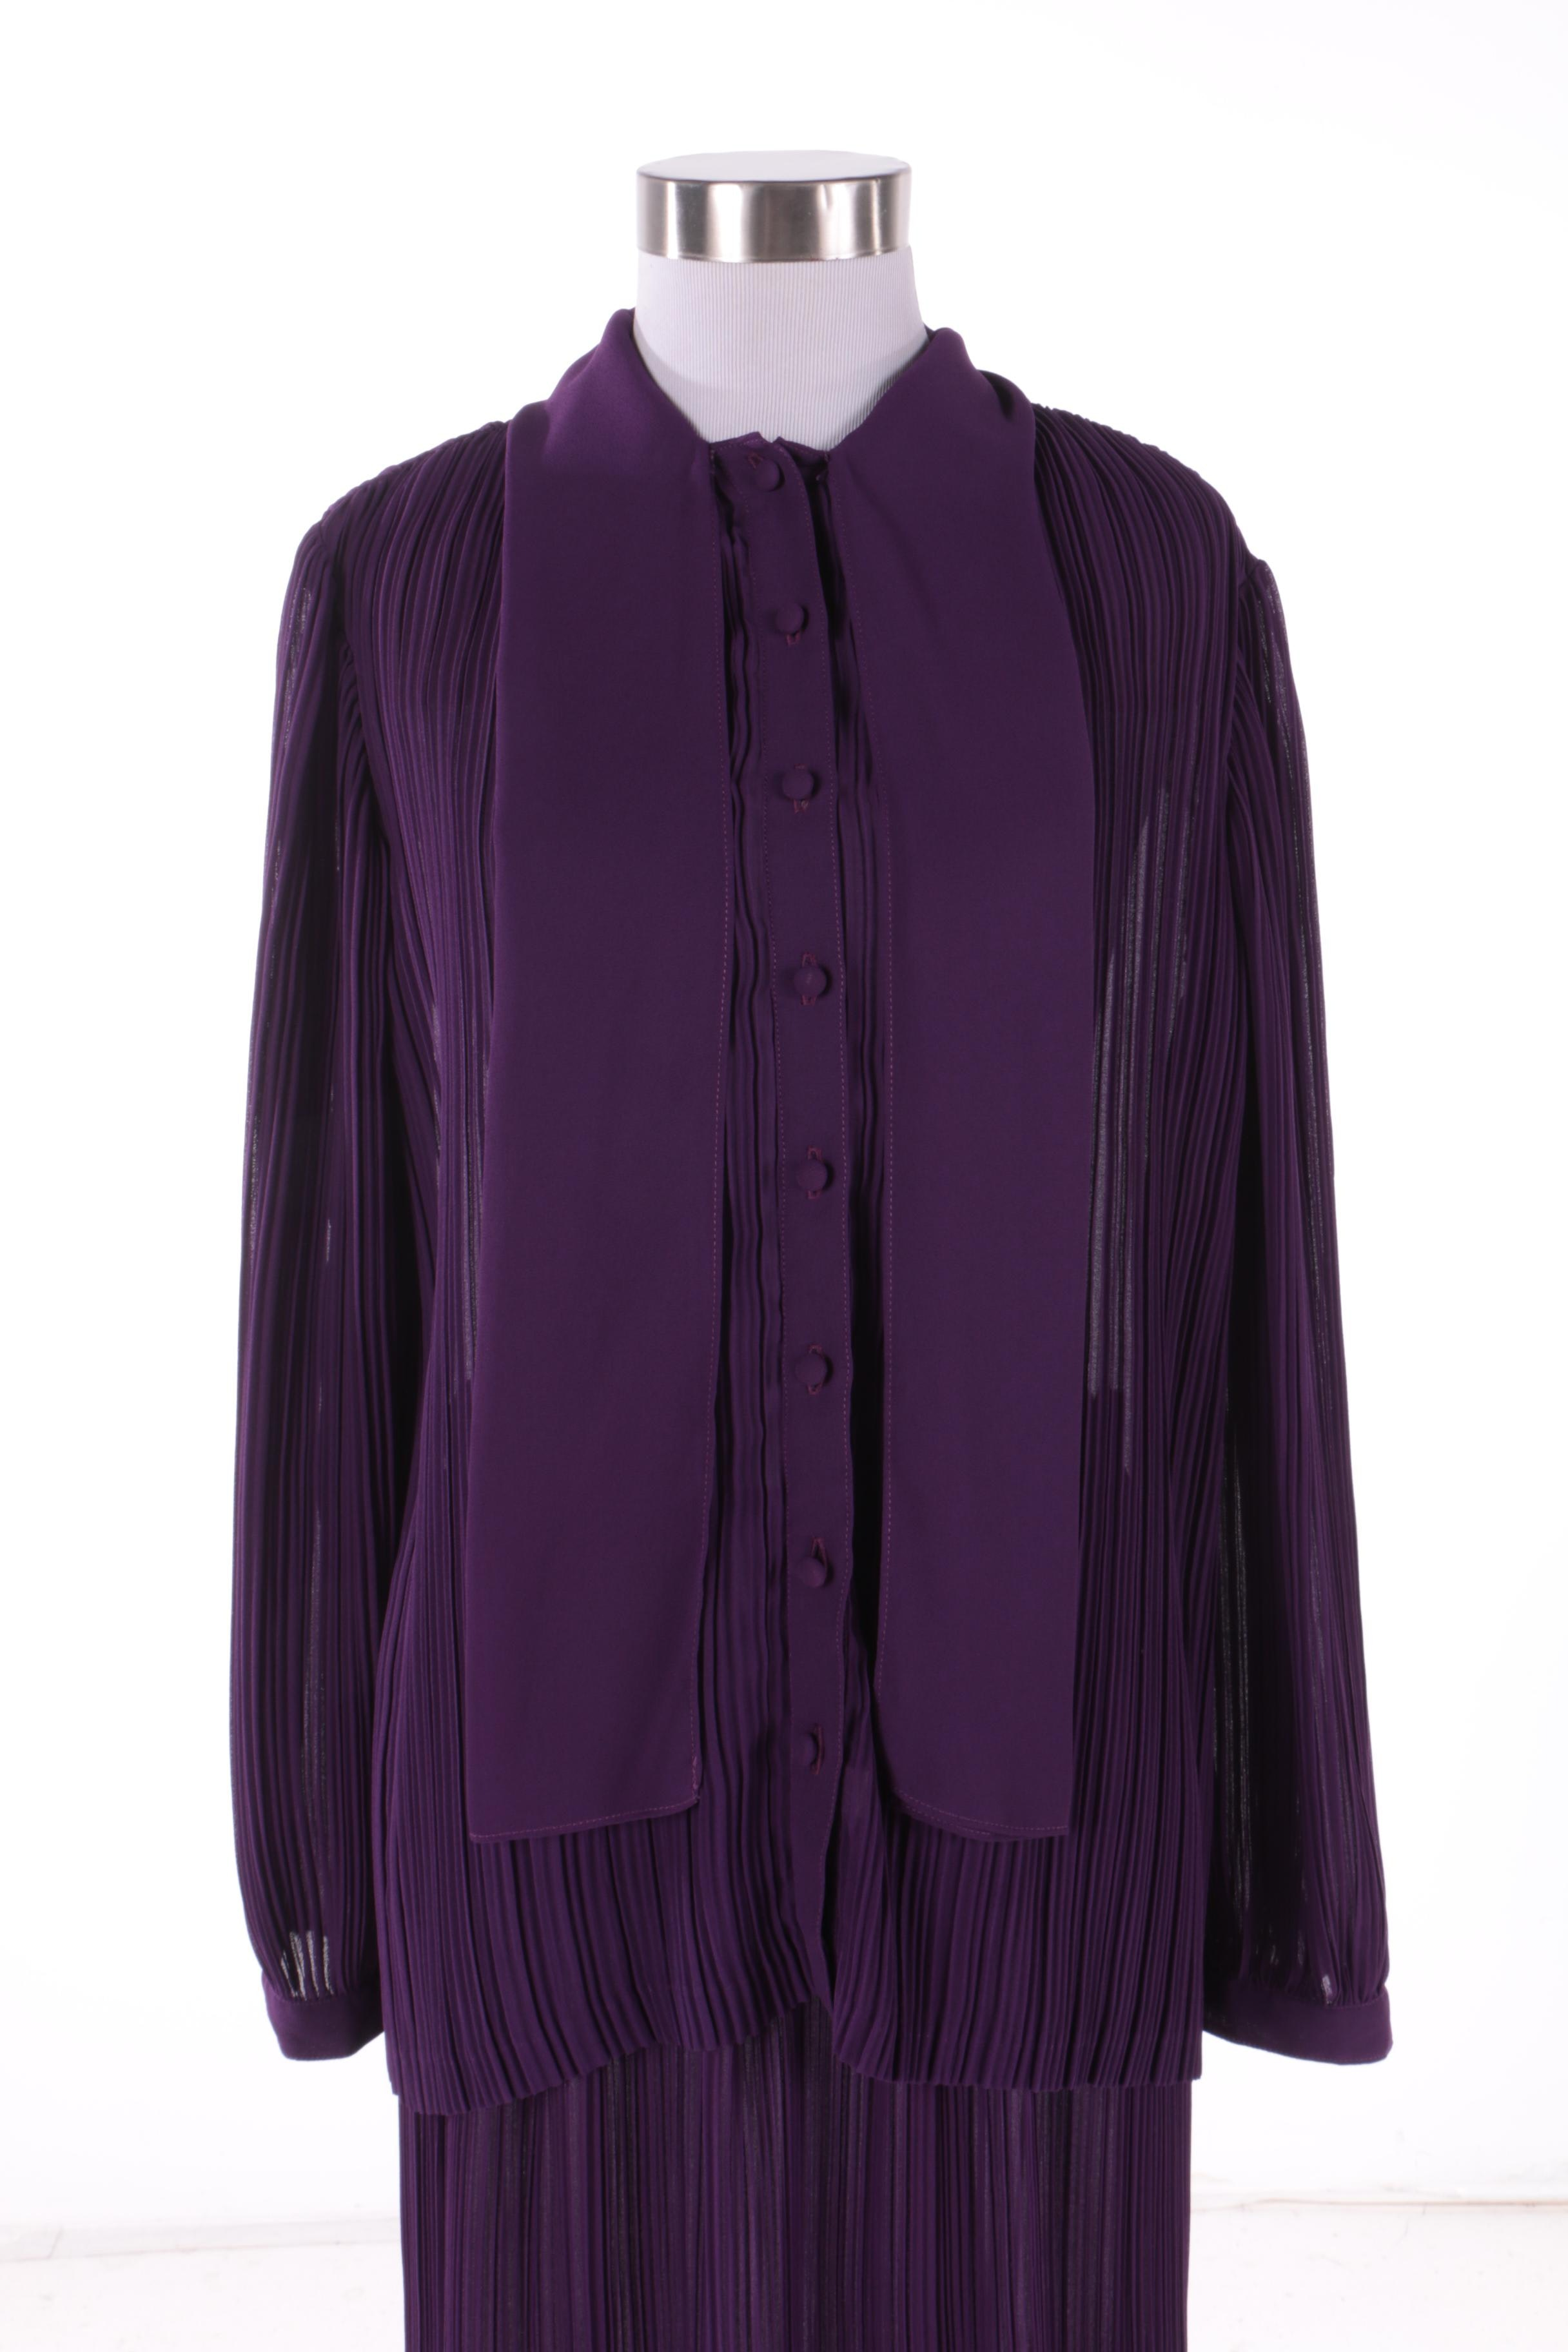 1970s Pauline Trigere for Schrader Purple Pleated Silk Skirt and Blouse Set